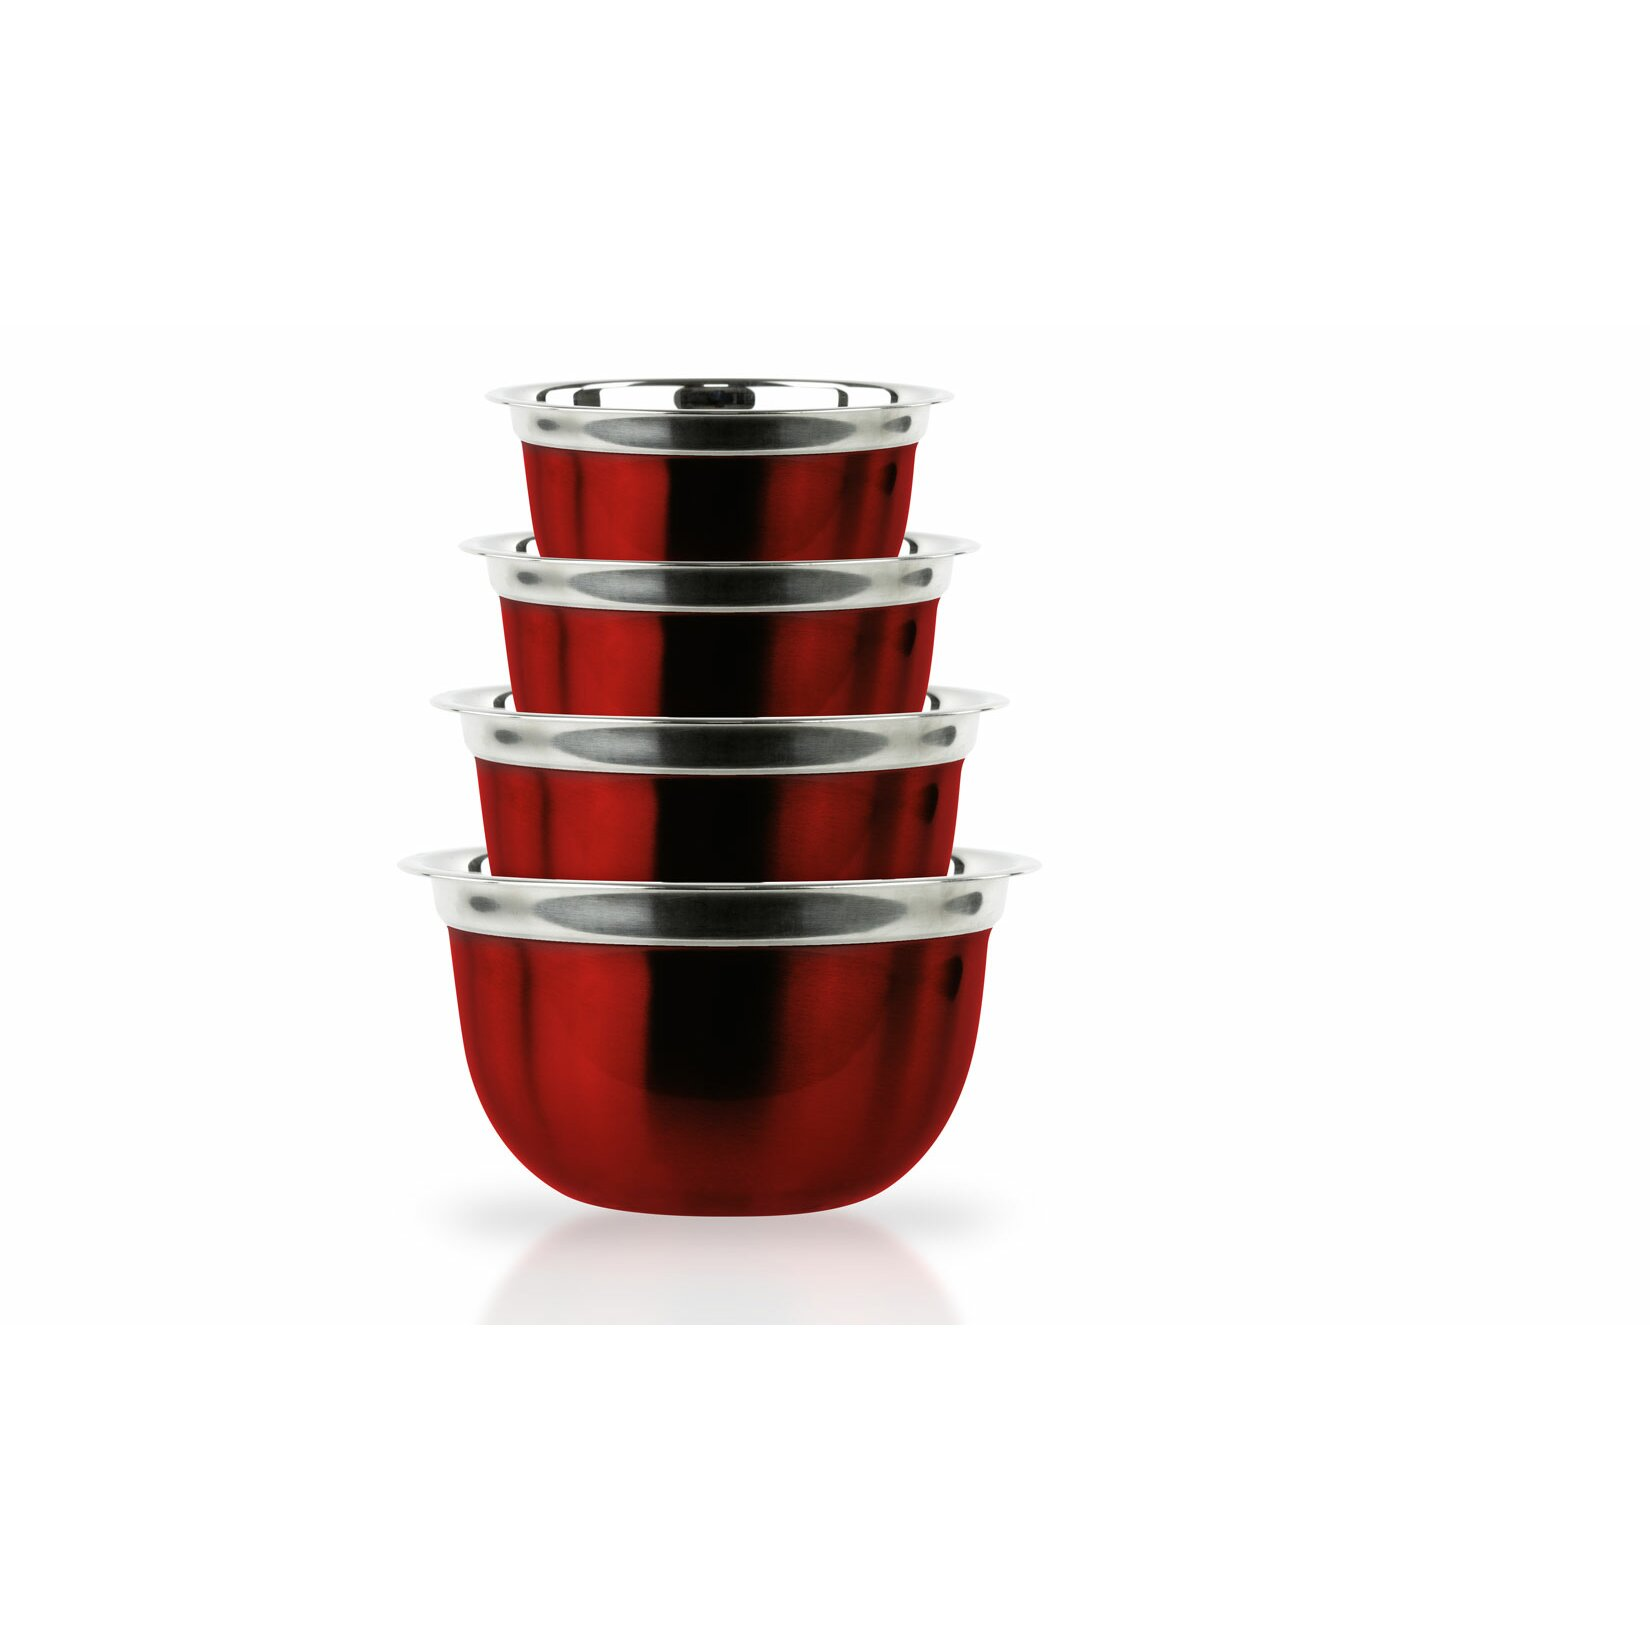 imperial home 4 piece red stainless steel bowl set reviews wayfair. Black Bedroom Furniture Sets. Home Design Ideas